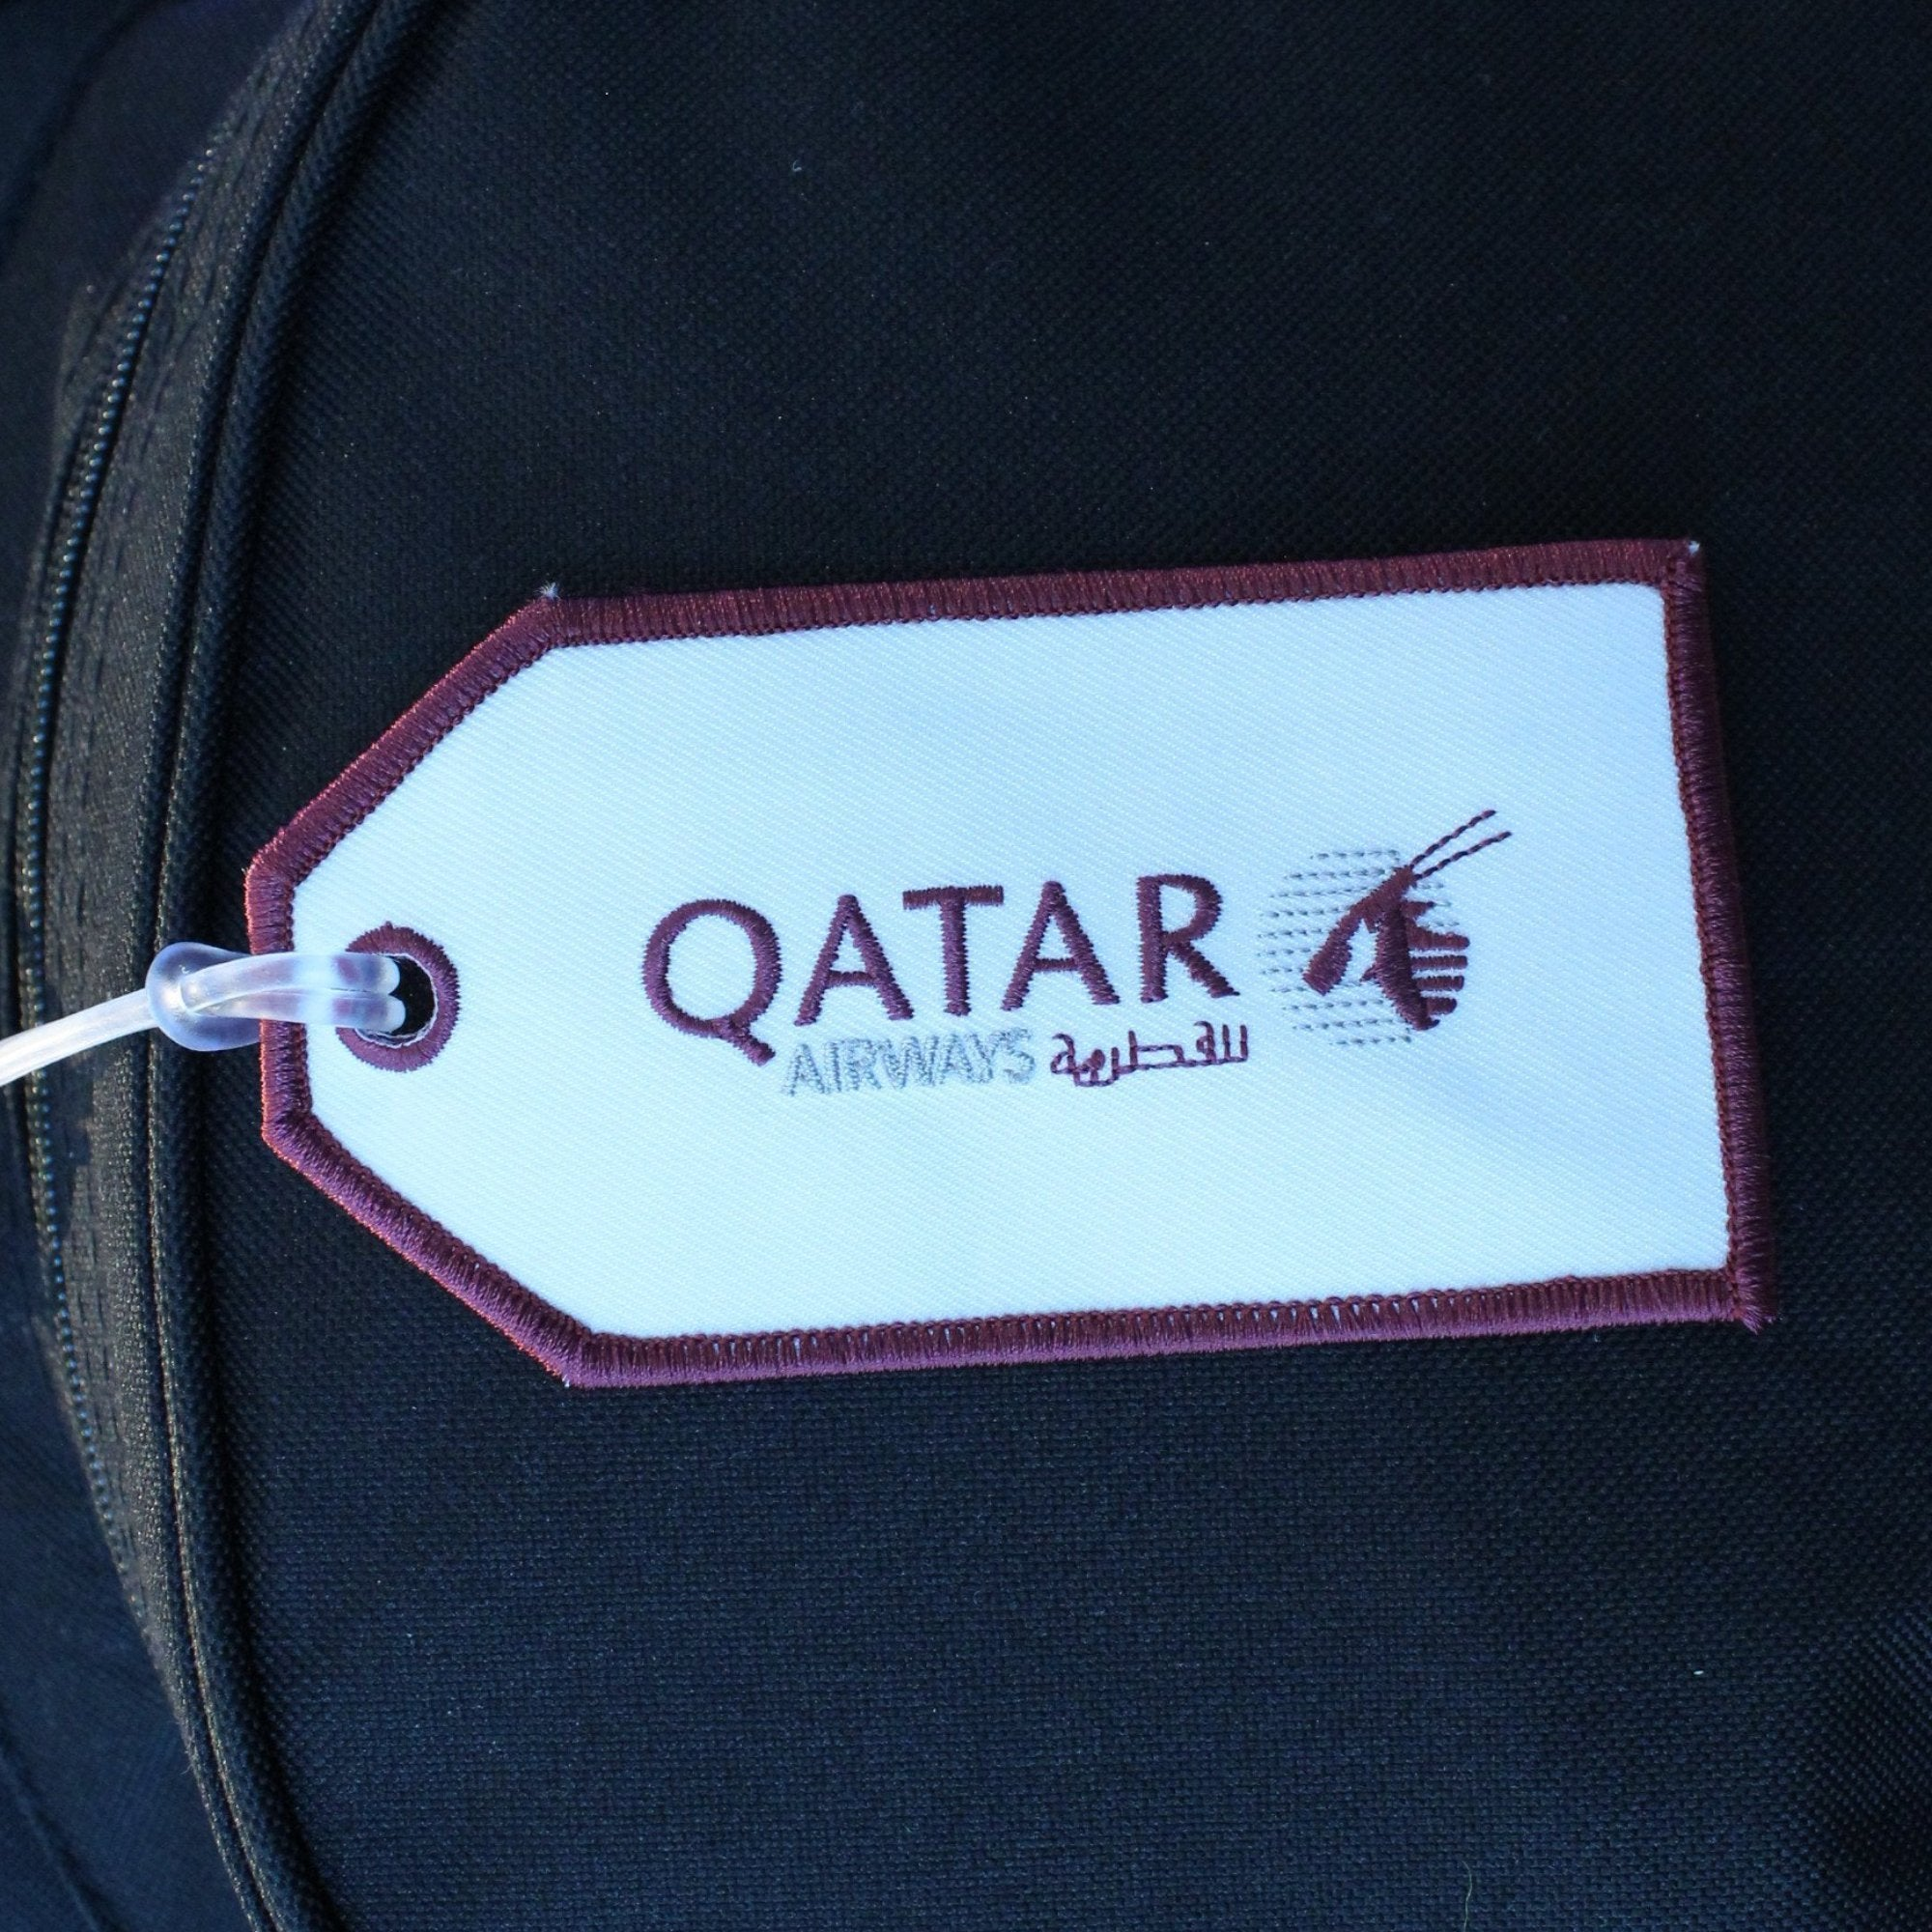 Qatar Airways Bag Tag